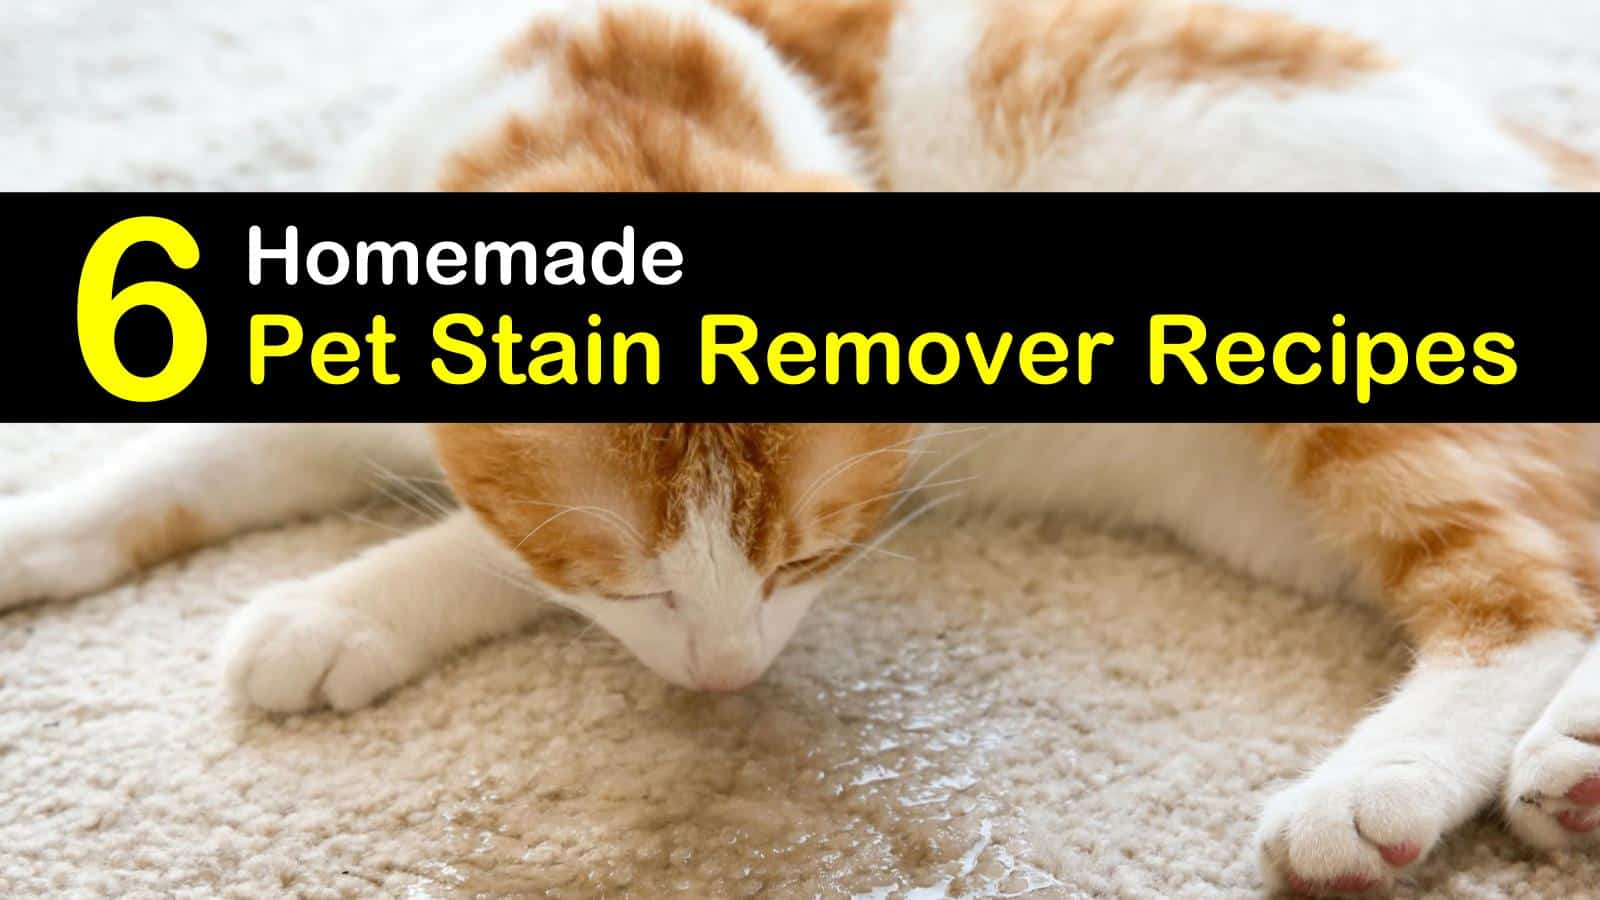 homemade pet stain remover titleimg1